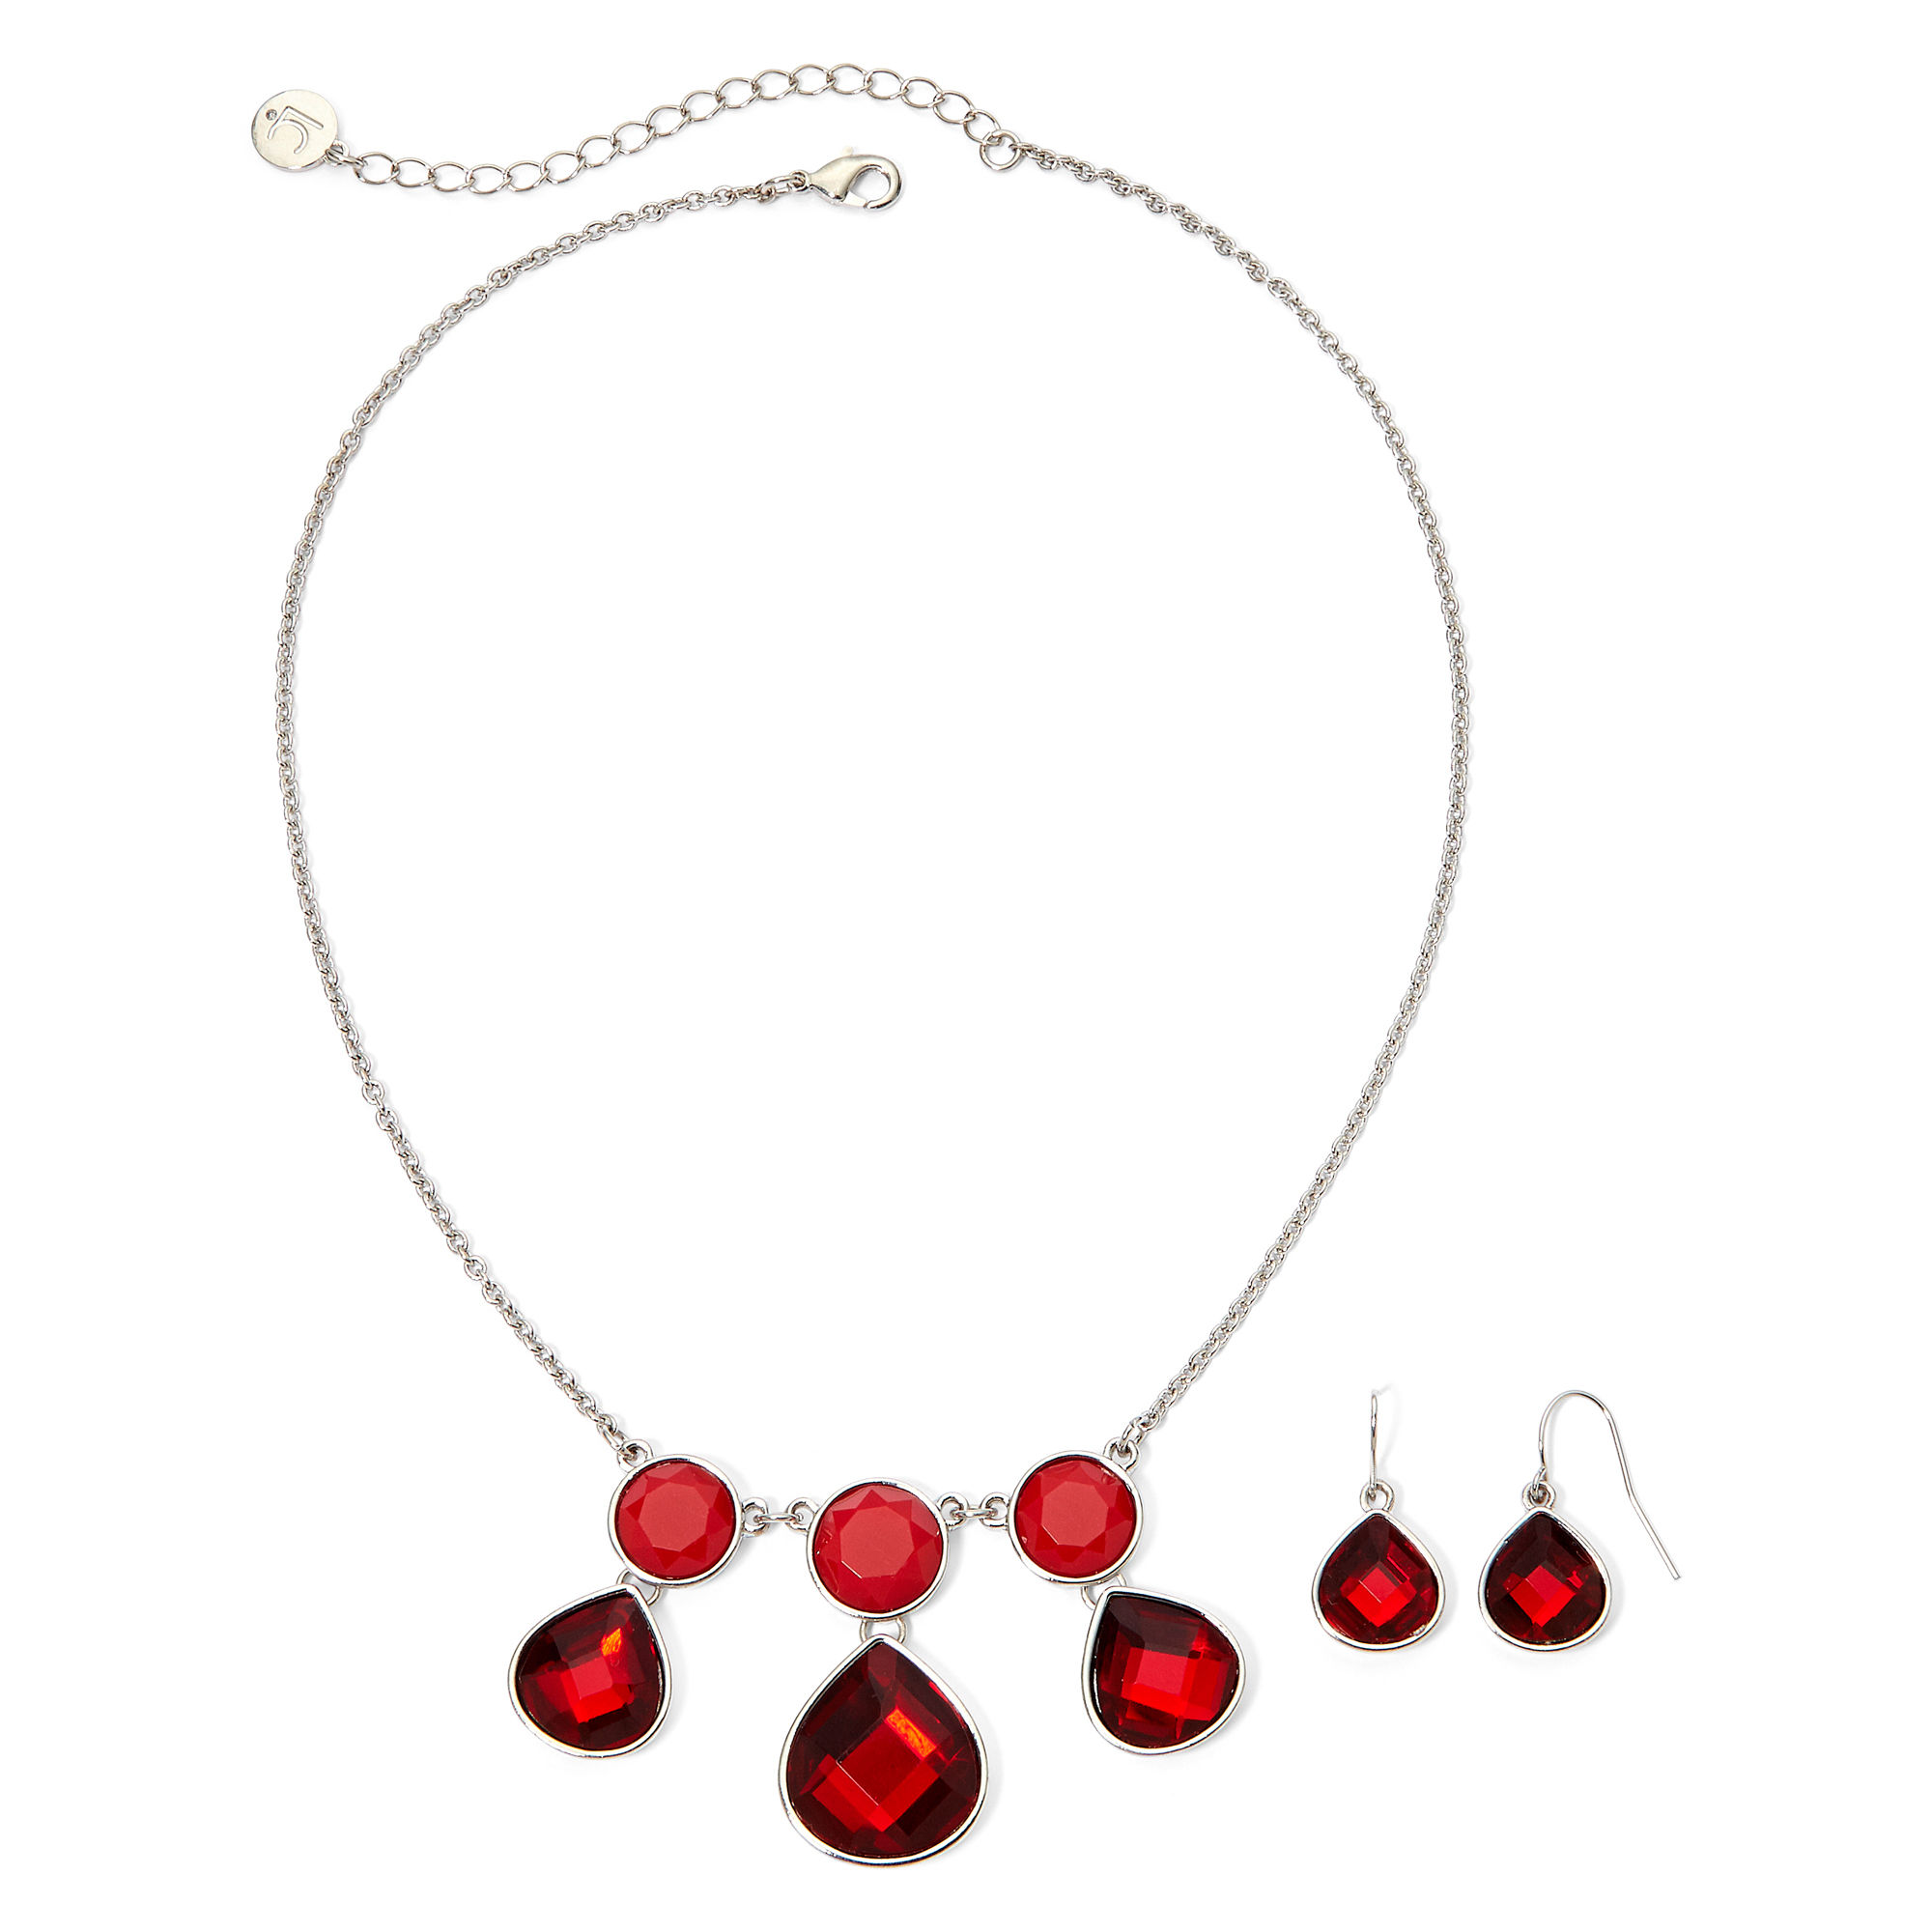 Liz Claiborne Silver-Tone Red Earring and Necklace Set